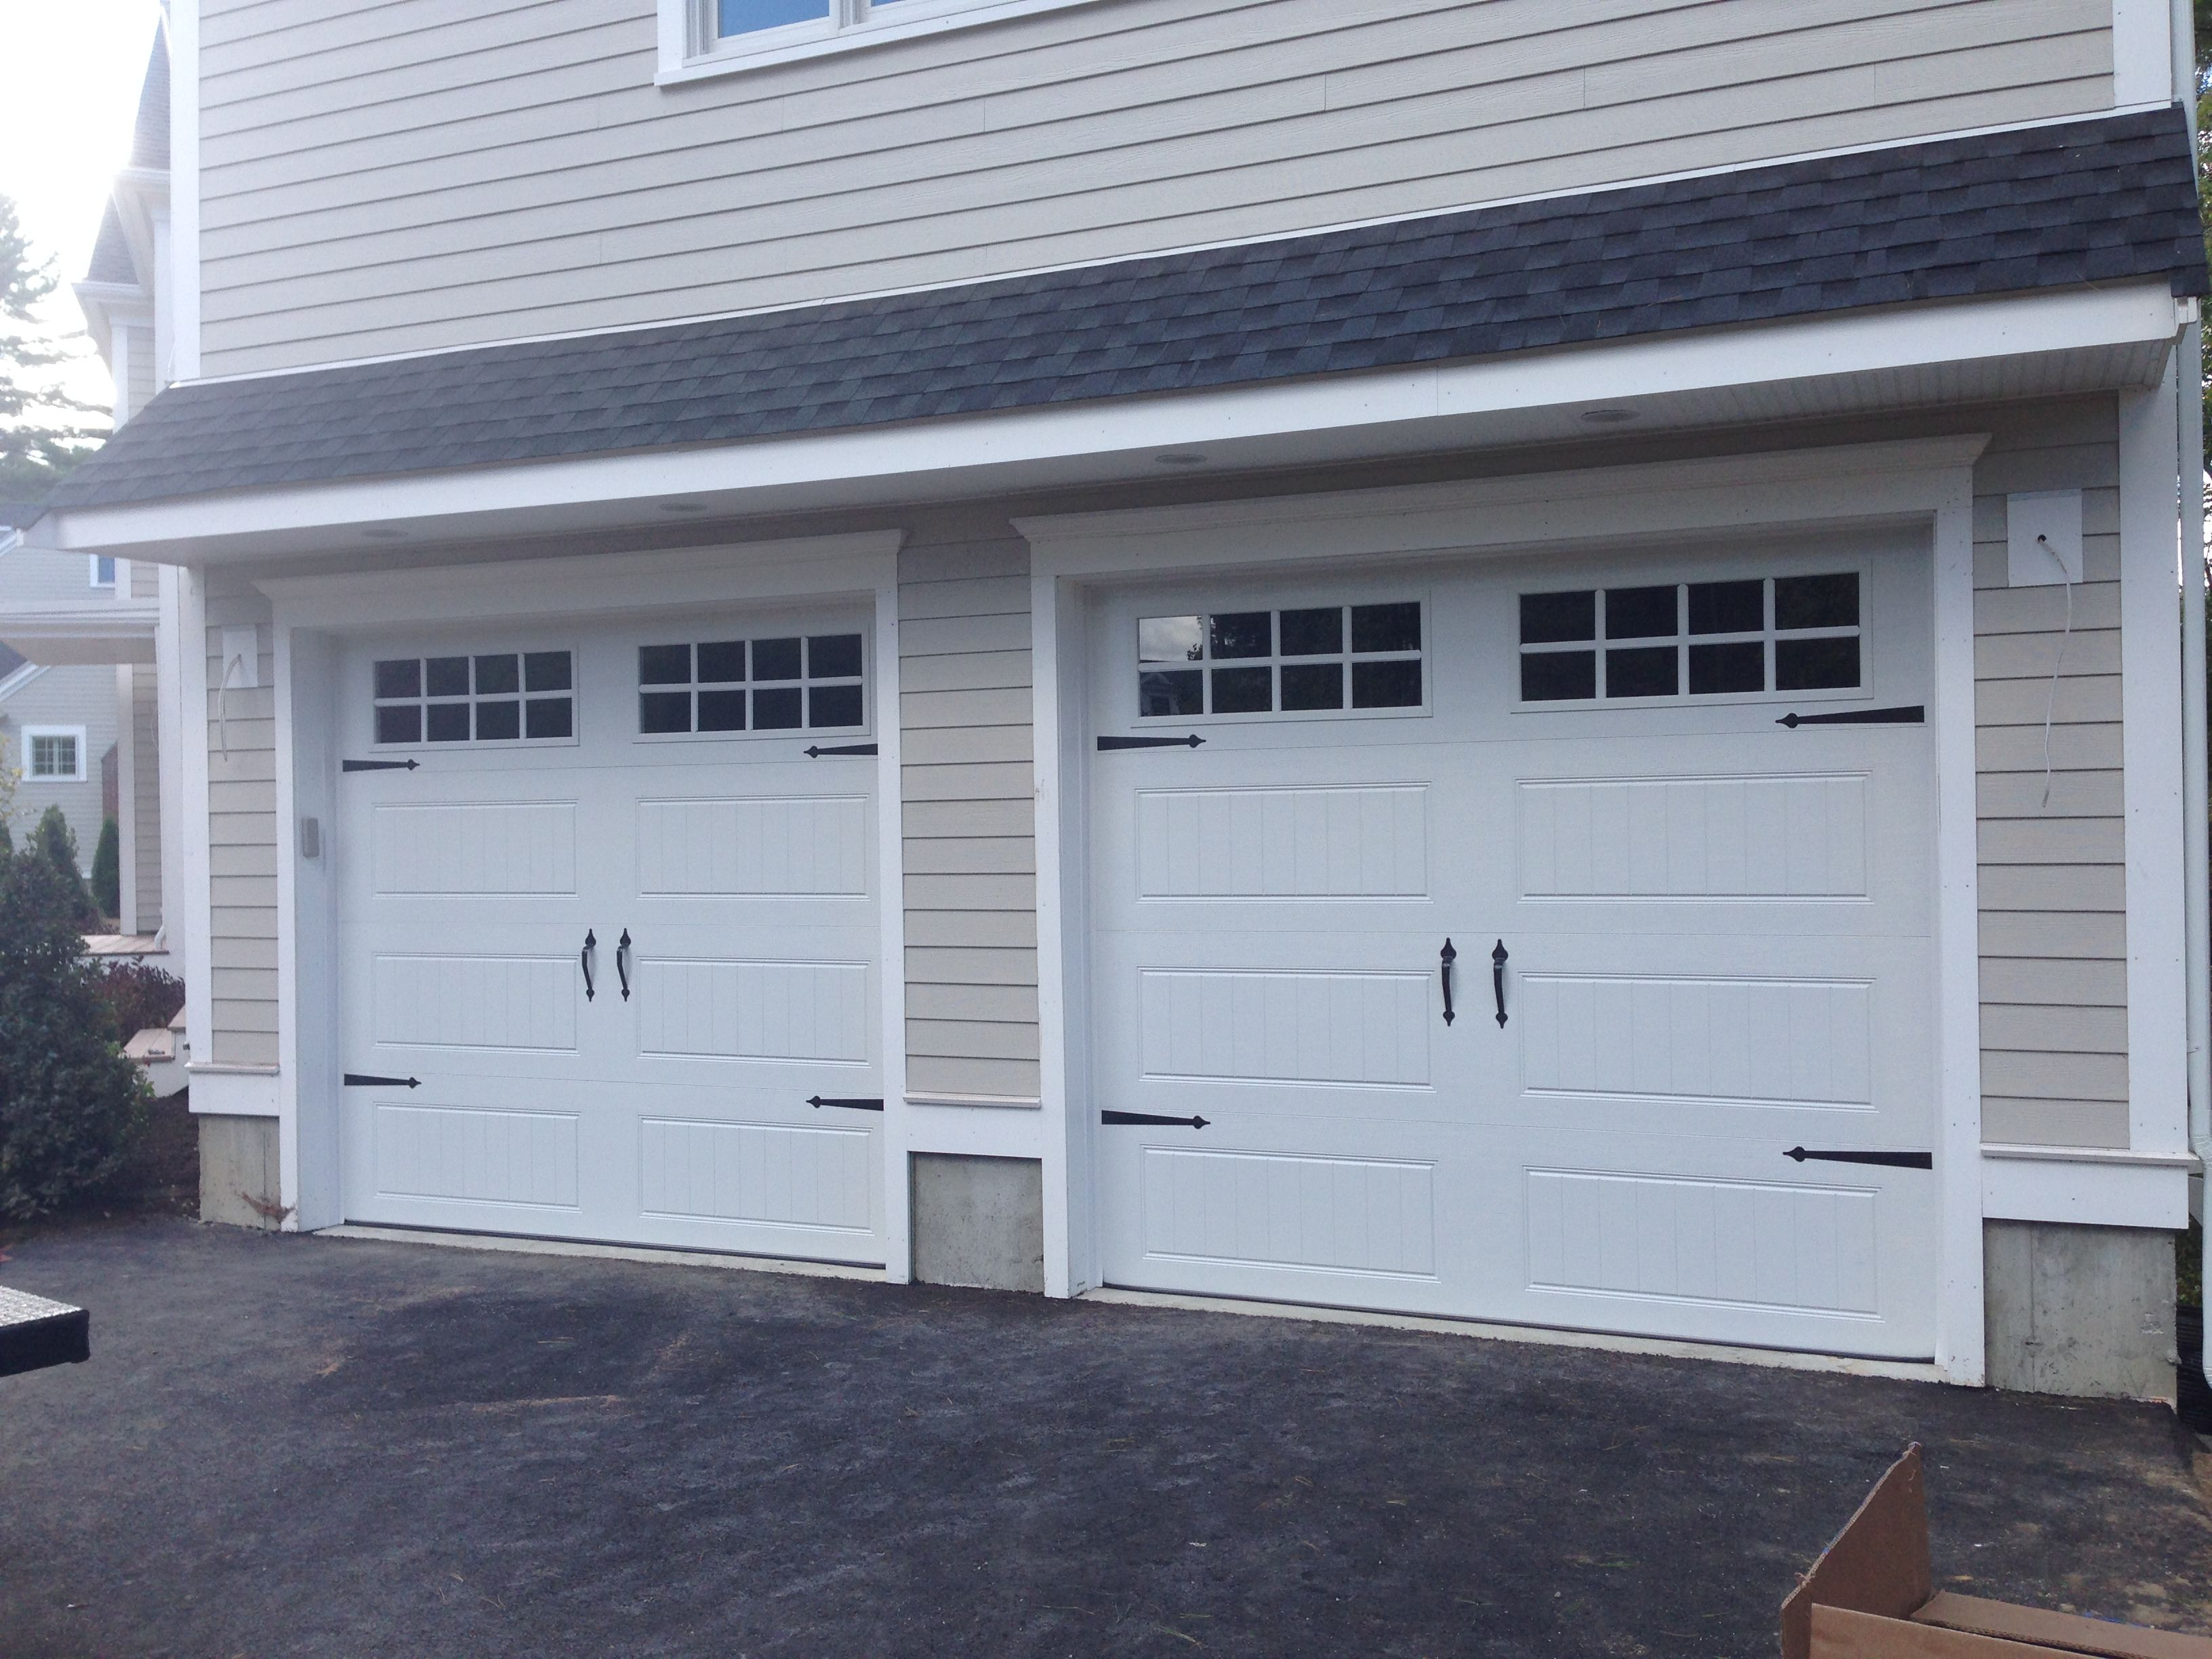 Garage Doors Santa Rosa Ca   Roller Garage Doors Provide You With An Extra  Sense Of Security And Can Include Safety.